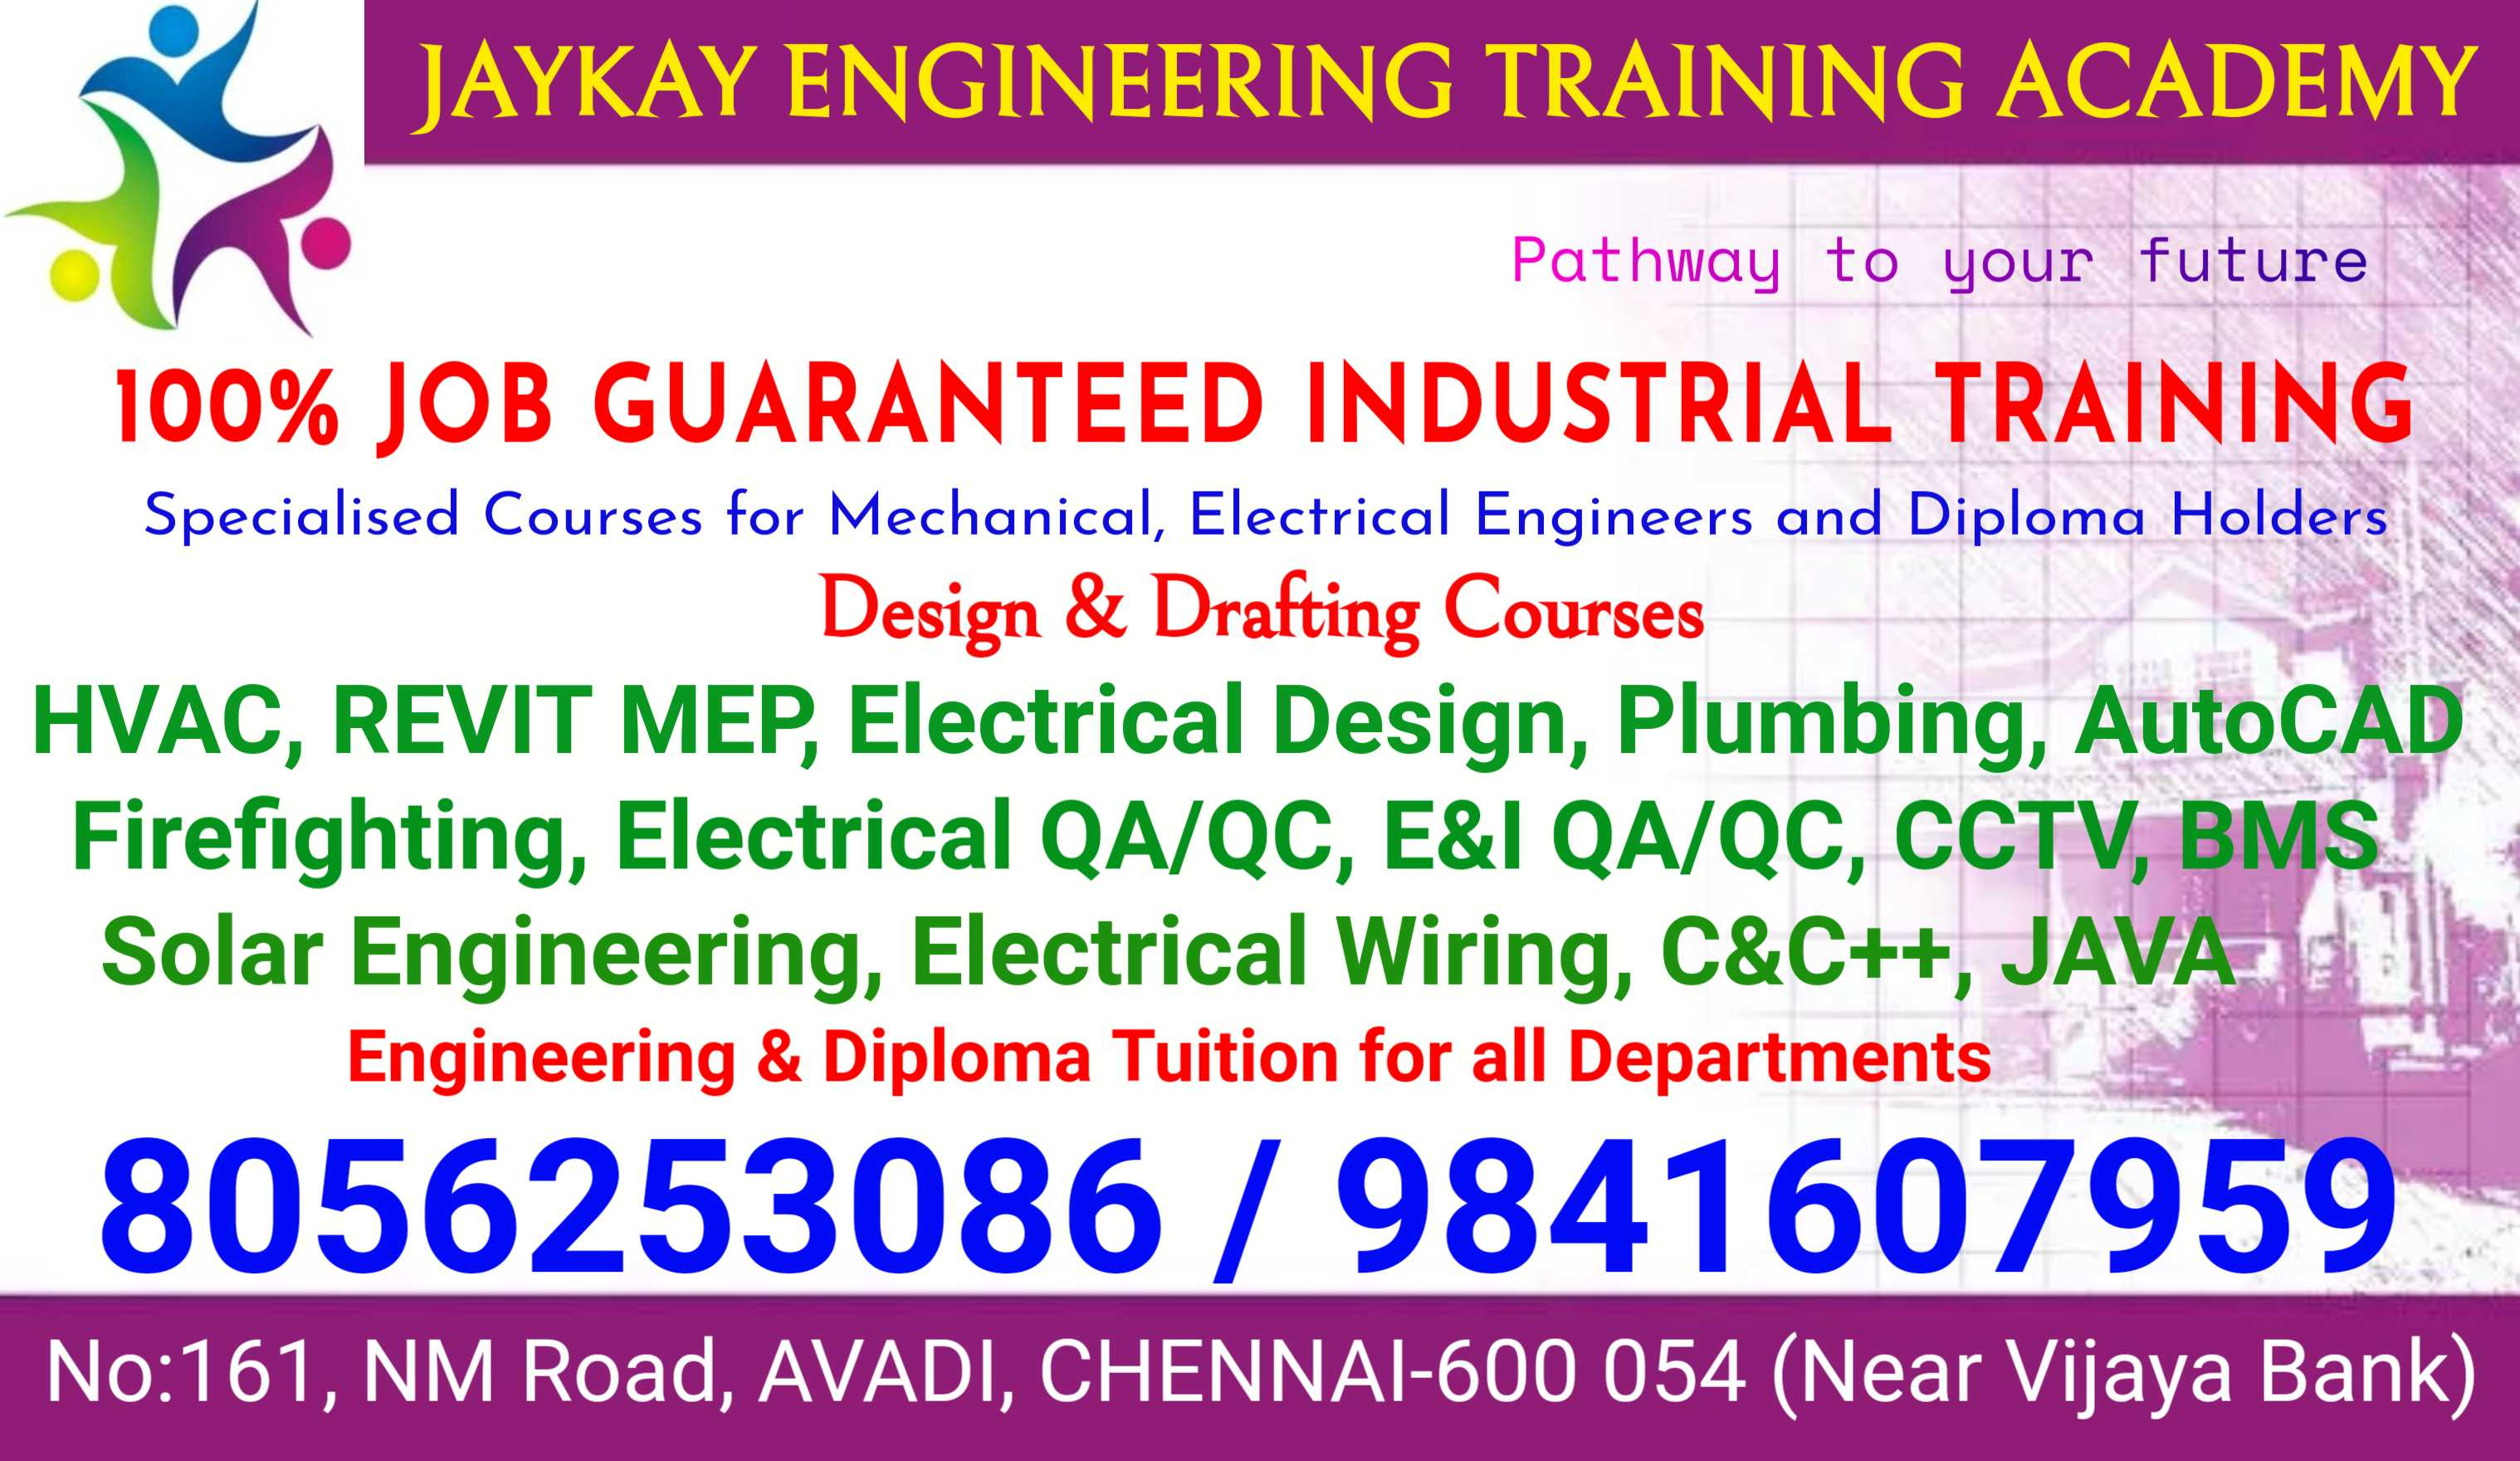 Jaykay Engineering Training Academy In Avadi Chennai 600054 Sulekha Chennai